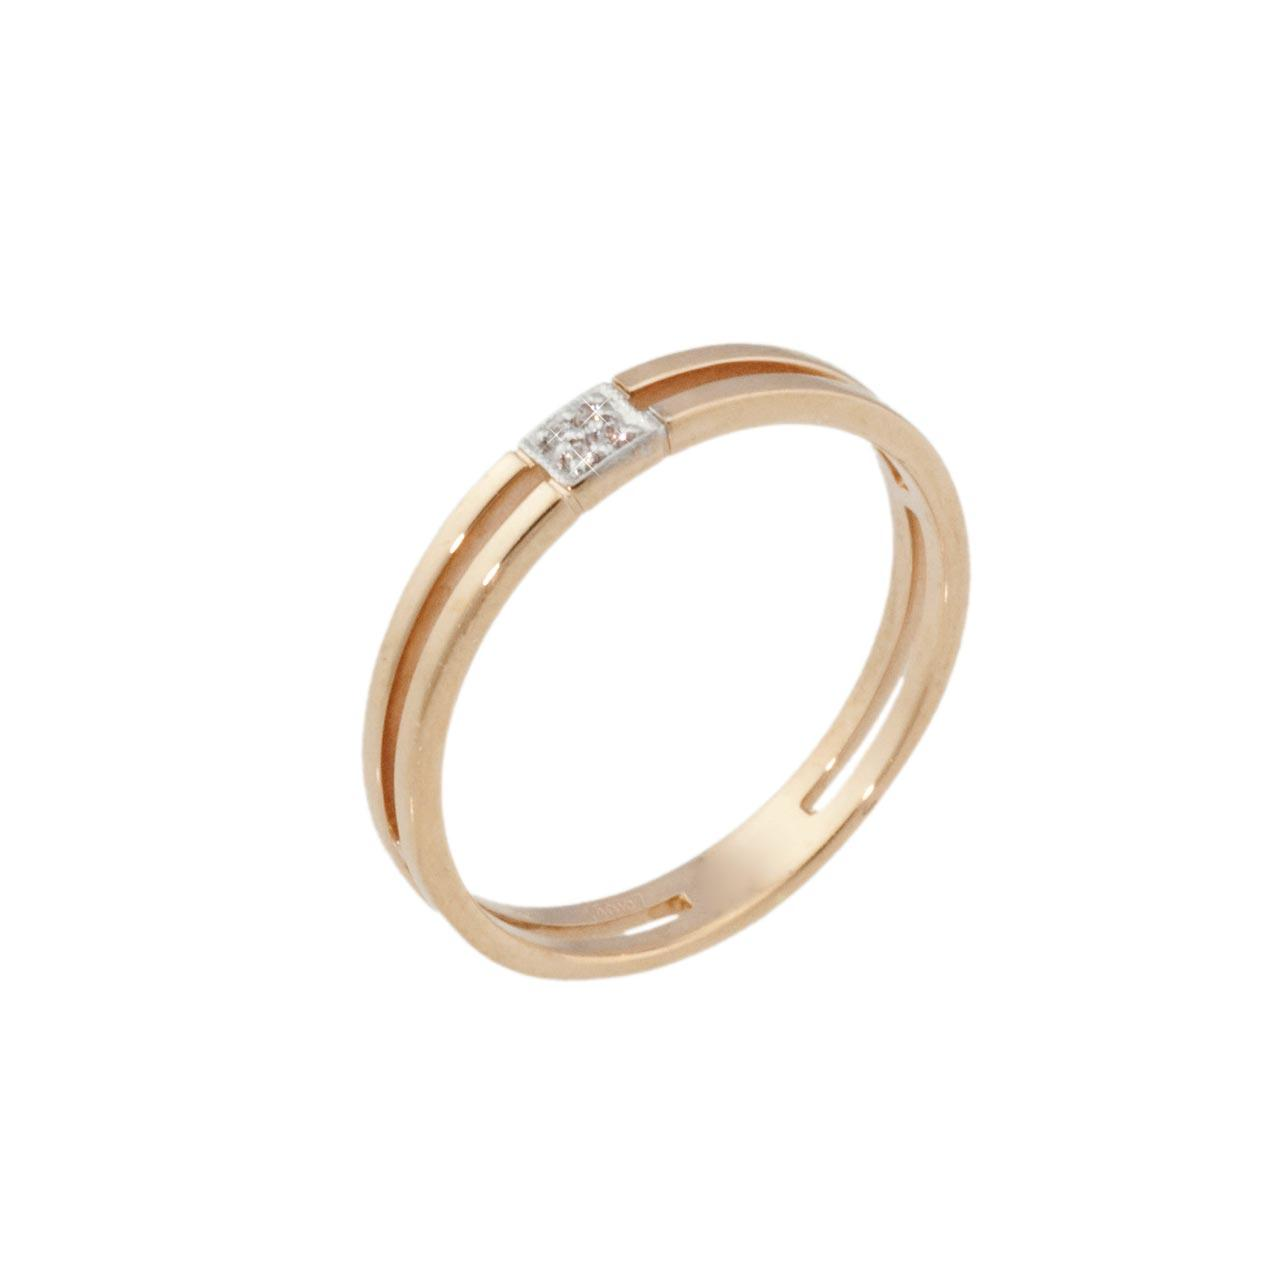 Rose Russian gold wedding ring 1